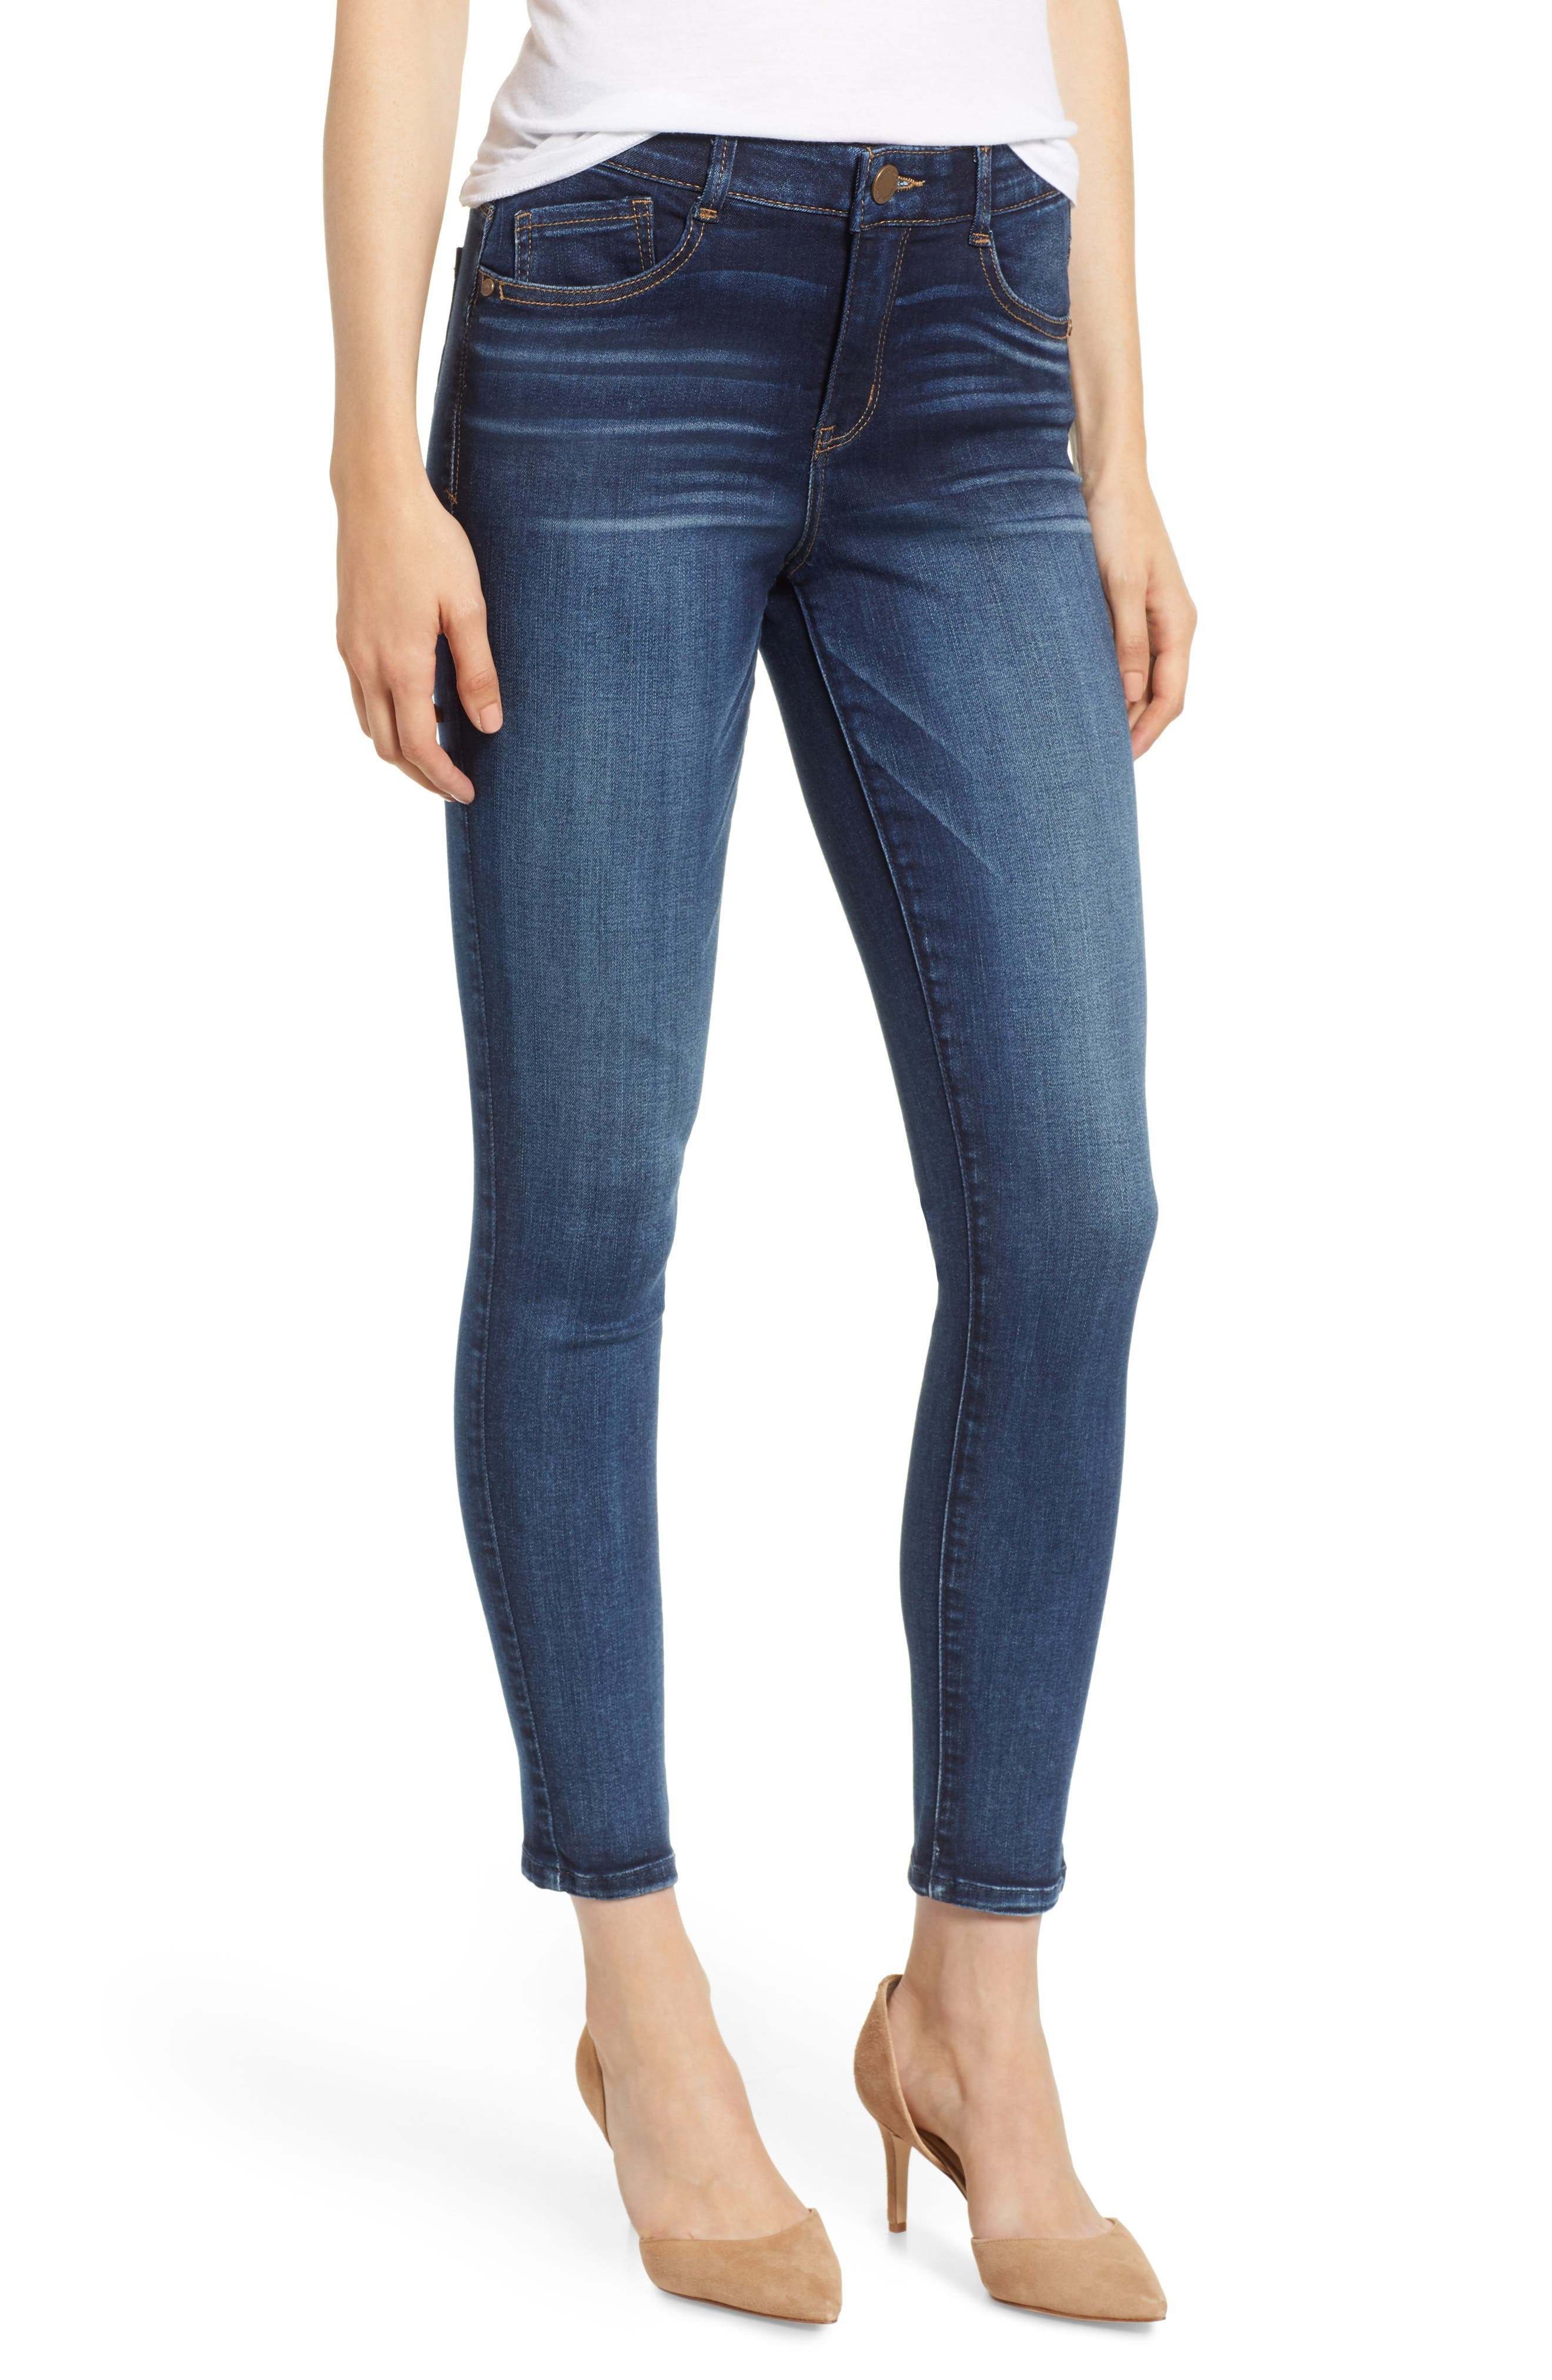 WIT & WISDOM, Luxe Touch High Waist Skinny Ankle Jeans, Main thumbnail 1, color, BLUE